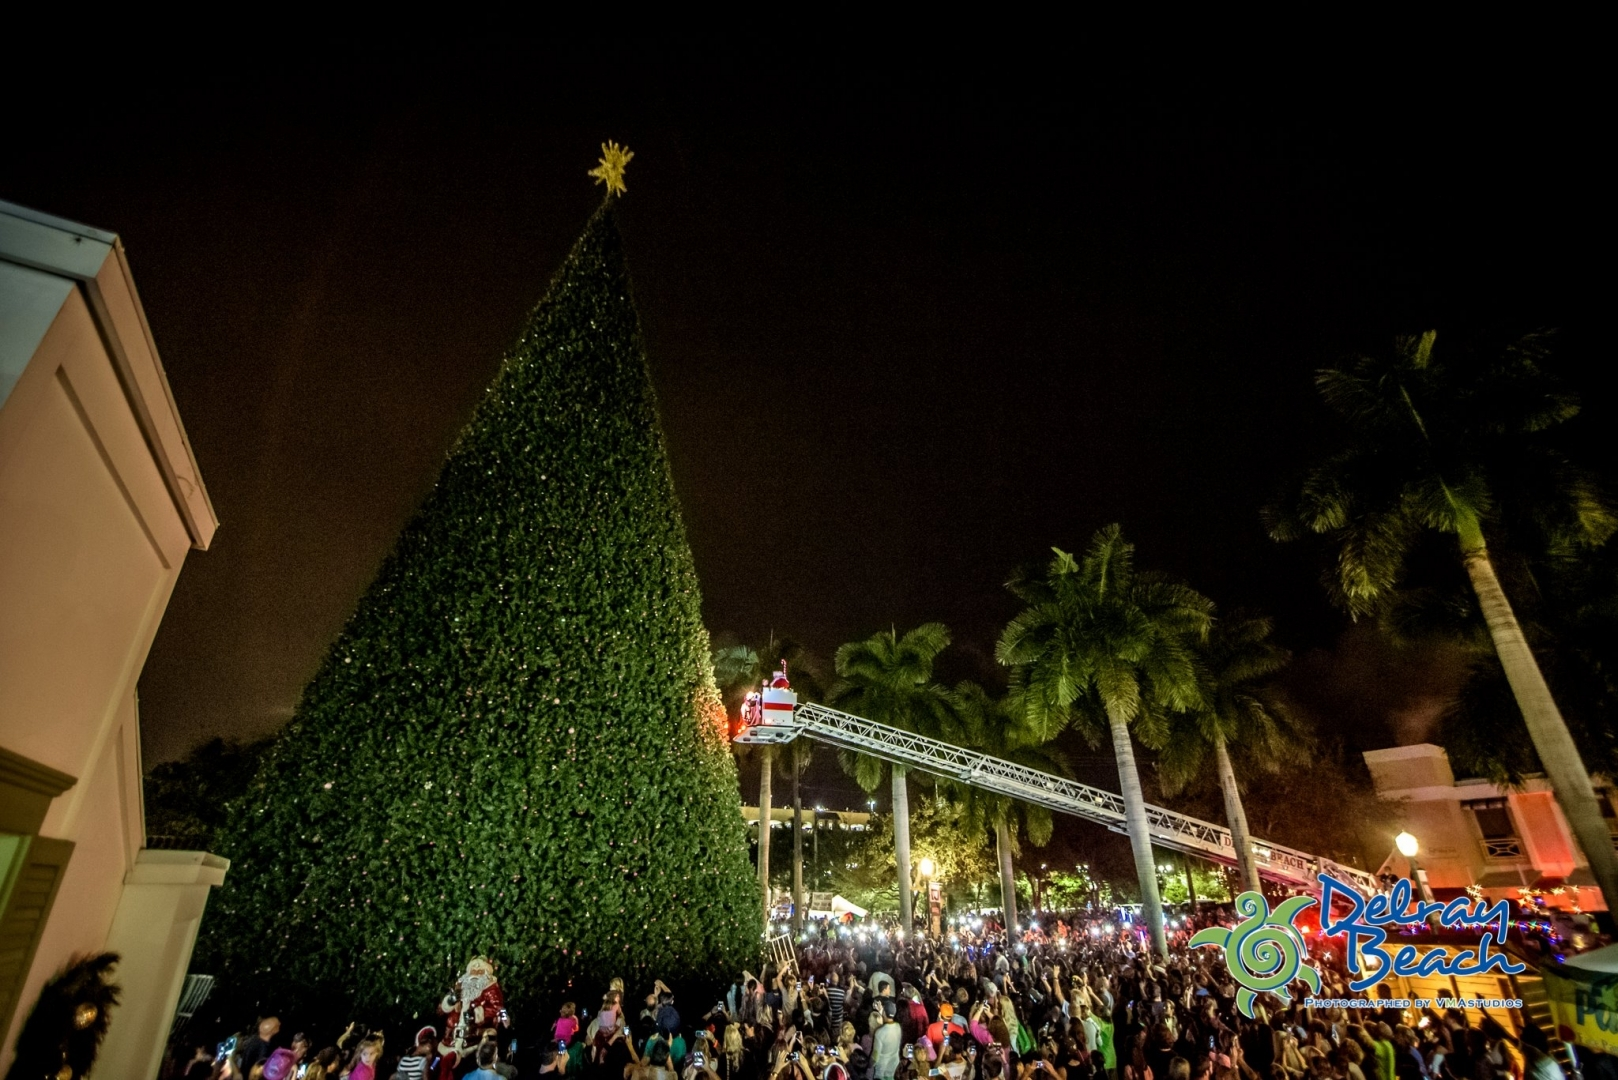 100 Ft Christmas Tree & Holiday Festivities | Downtown Delray Beach